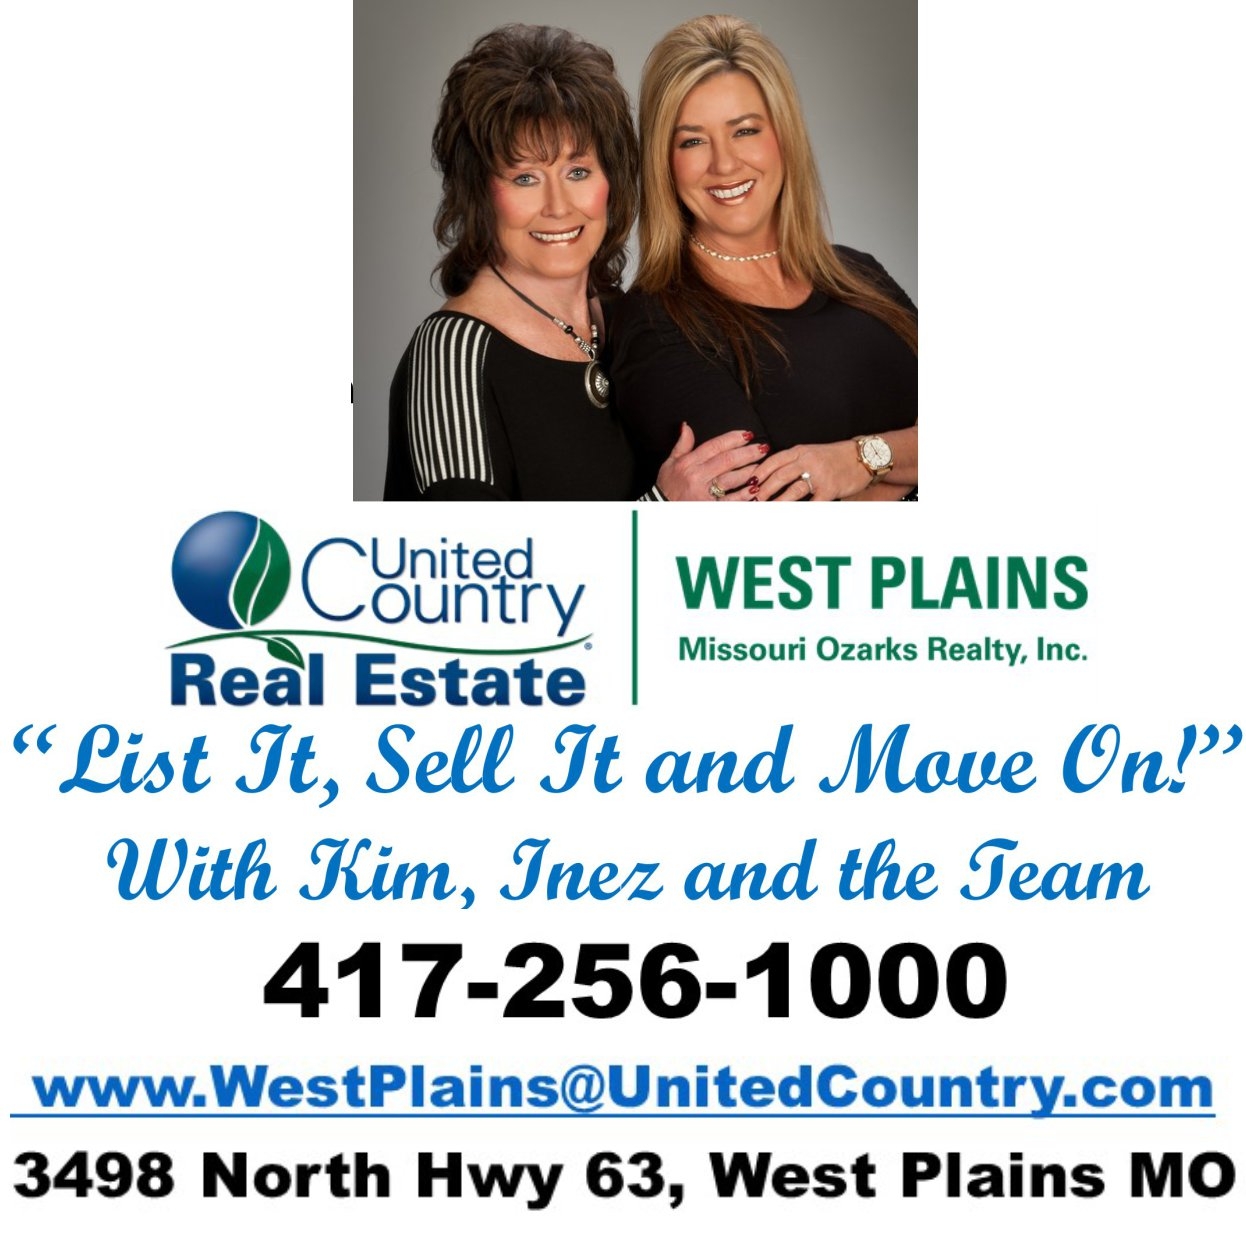 United Country/Missouri Ozarks Realty